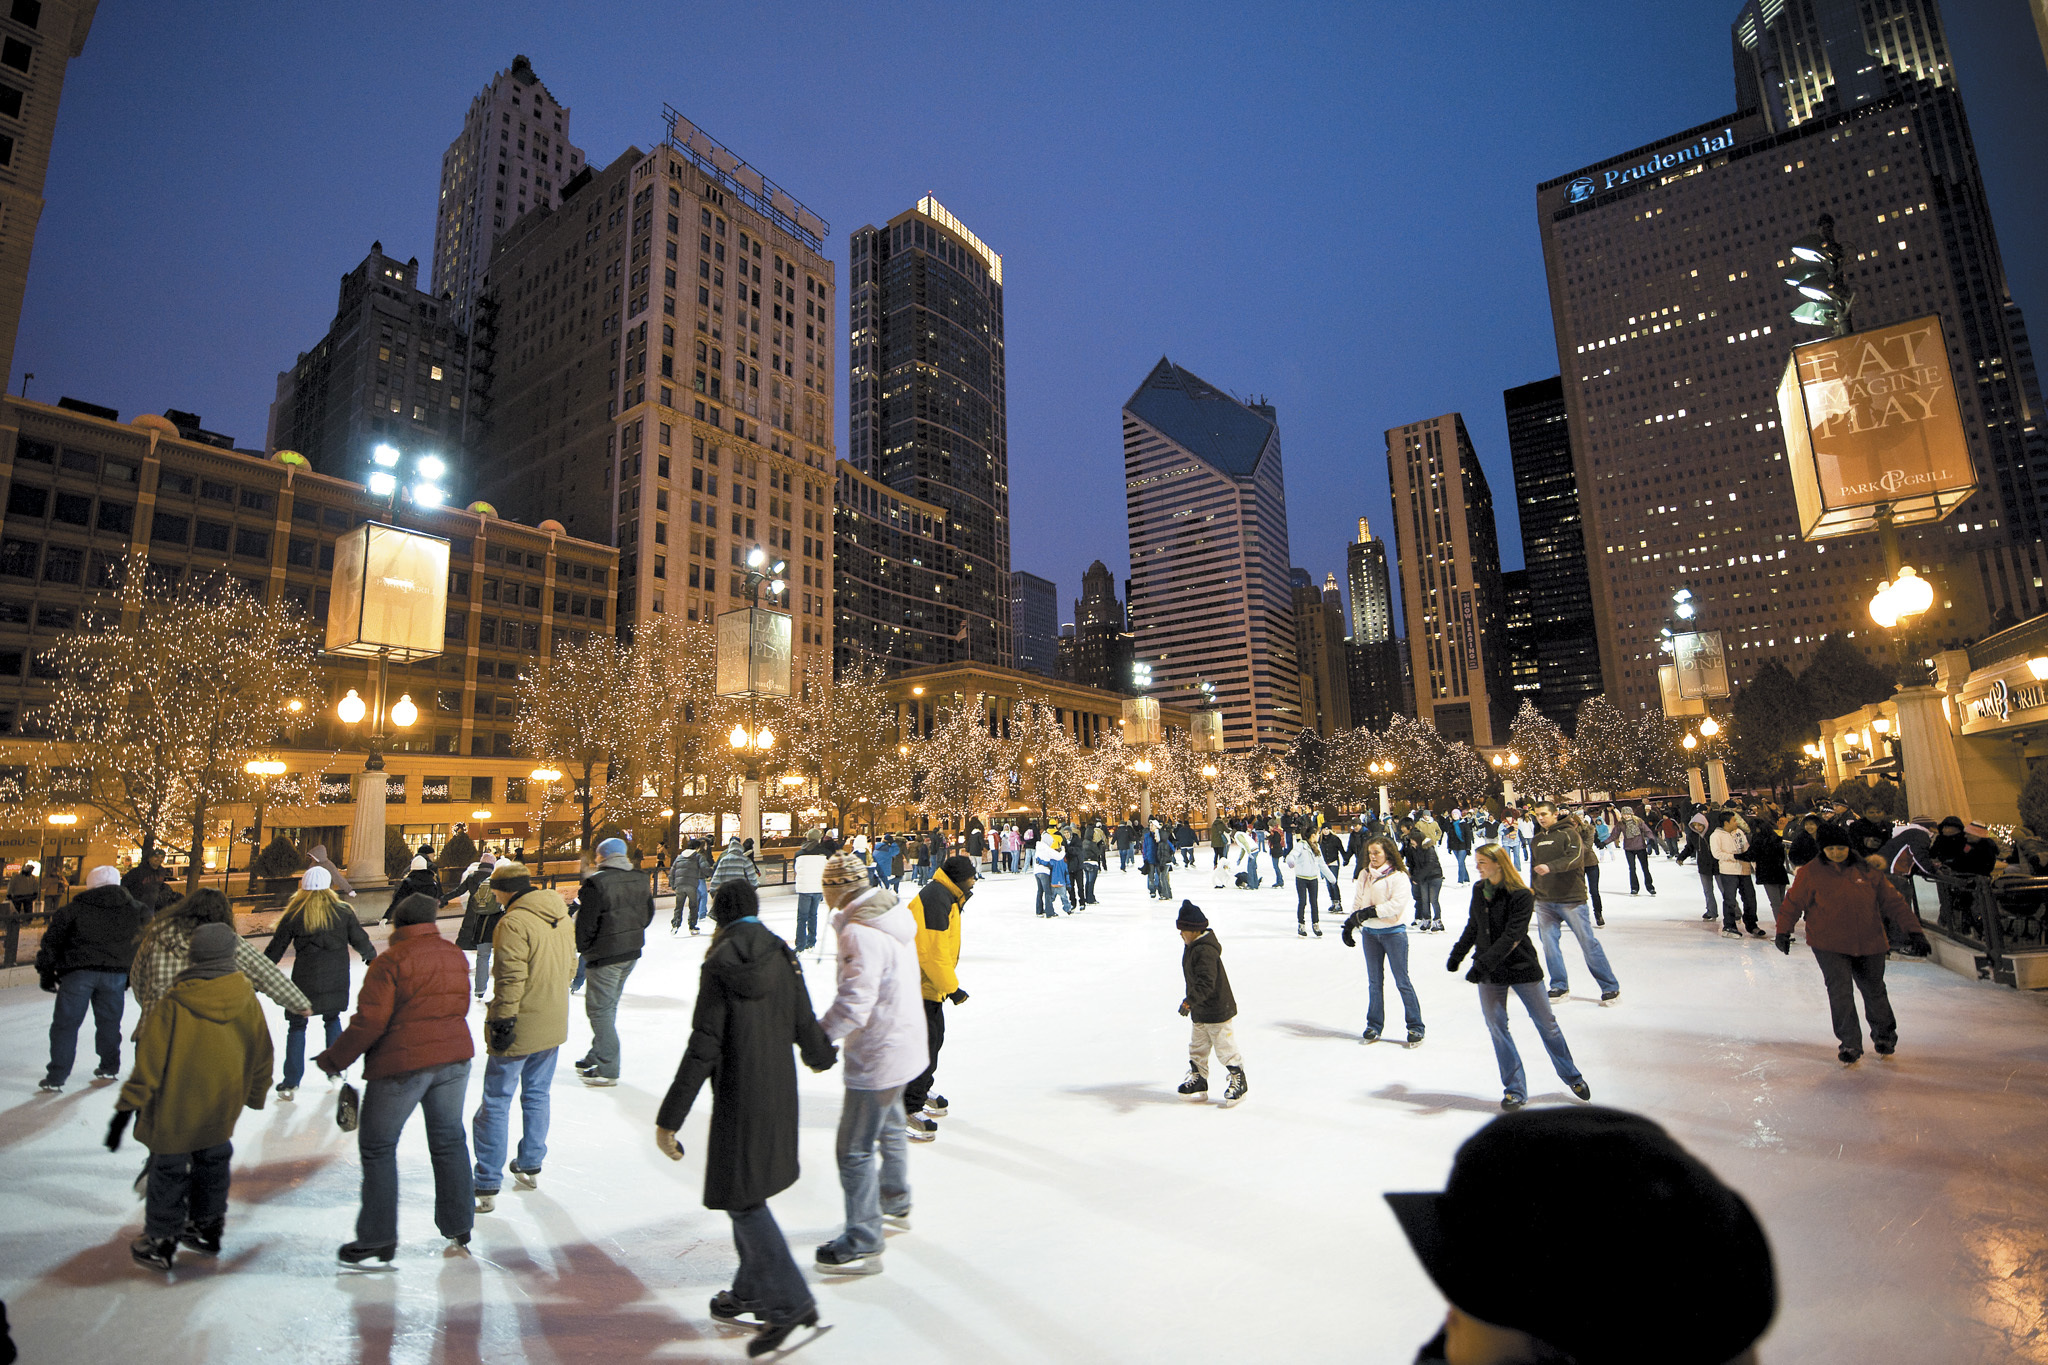 MillenniumSkating.venue.jpg